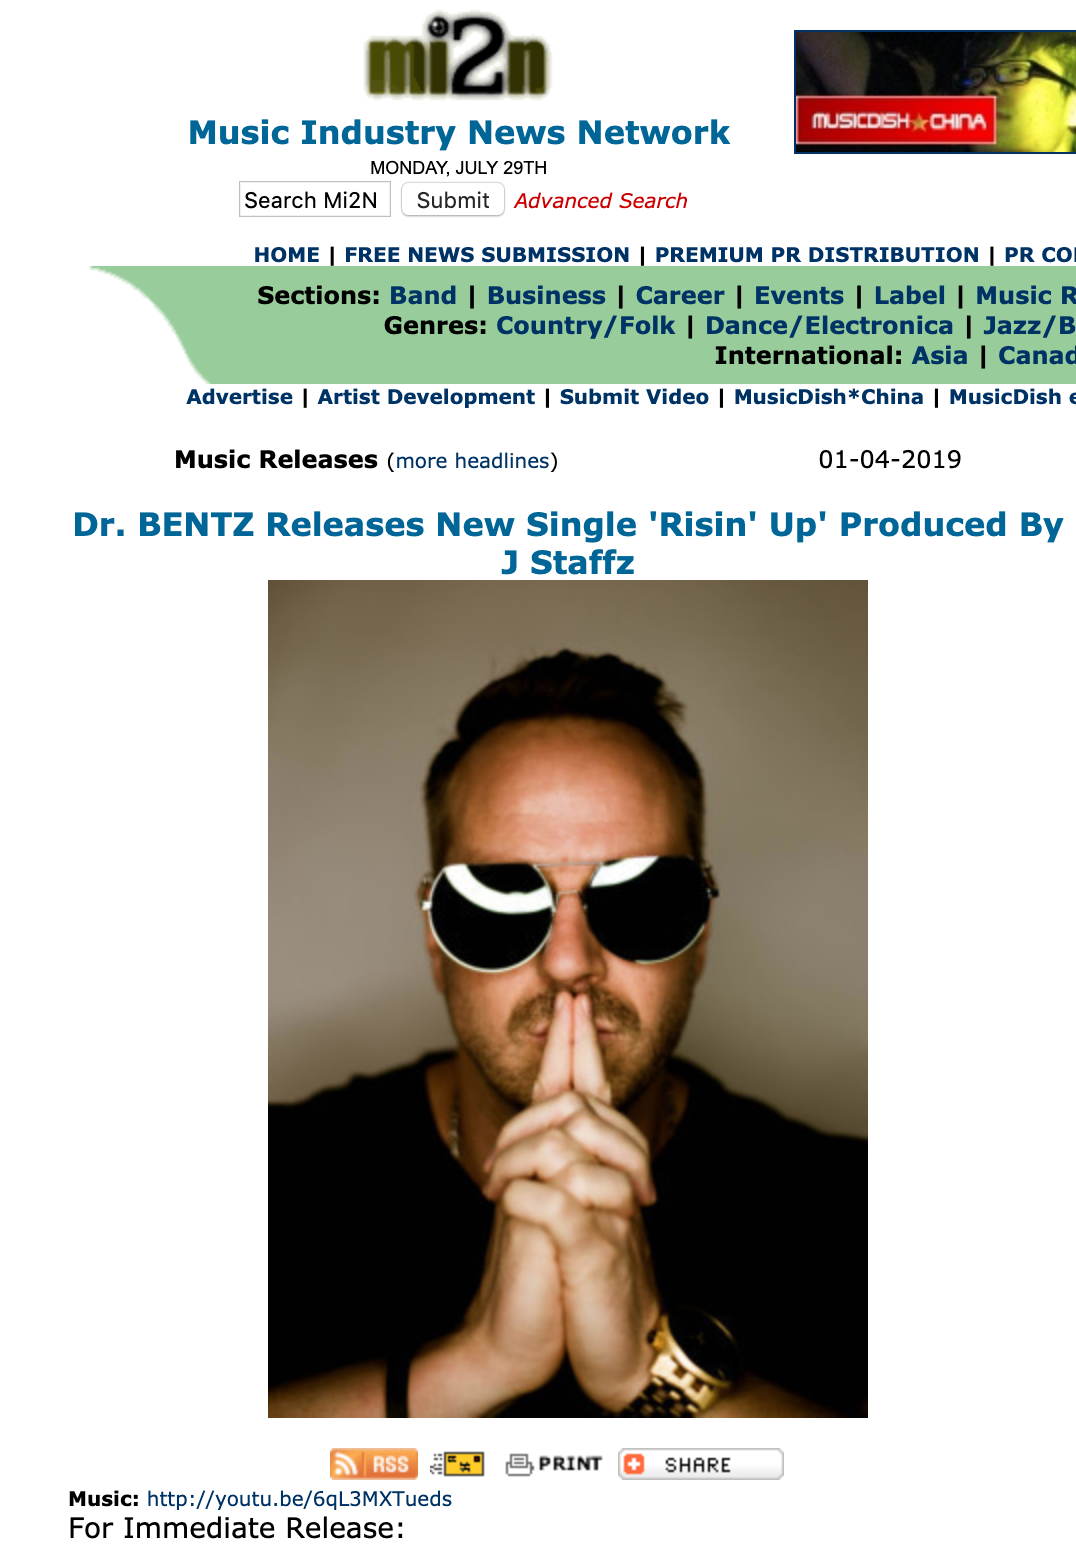 Music Industry News Posts on Risin' Up! - Dr. BENTZ gets Press Release Featured